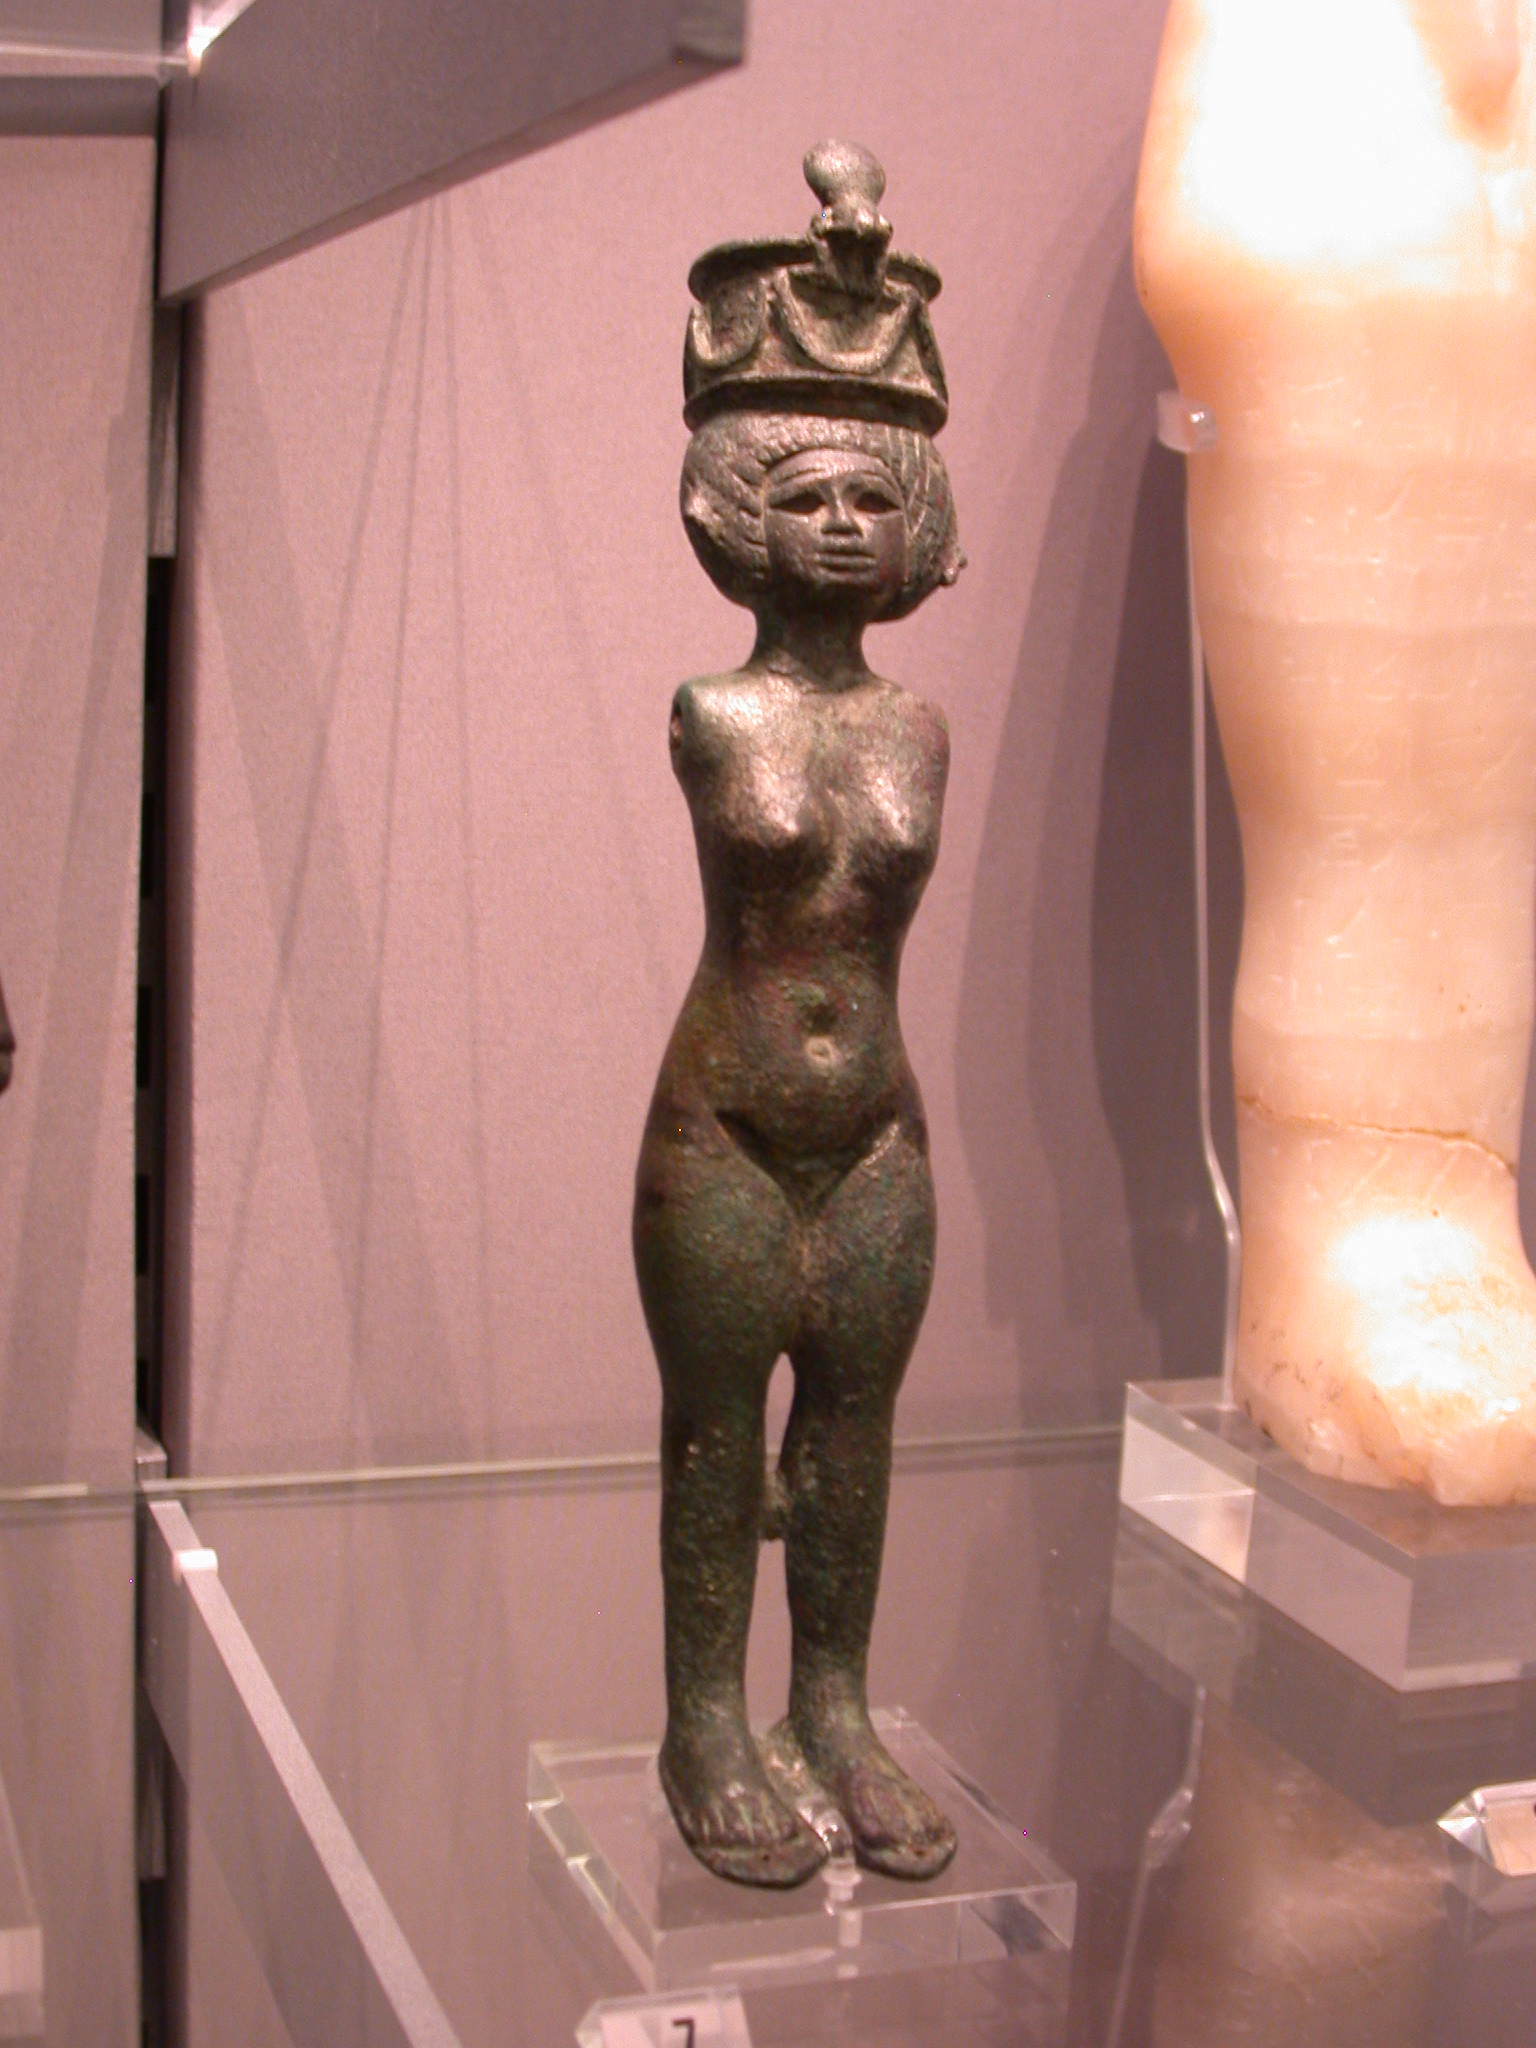 Figurine of Naked Woman With Crown, Probably of Fertility Priestess, 25th Dynasty, 746-664 BCE, Egypt, in Fitzwilliam Museum, Cambridge, England